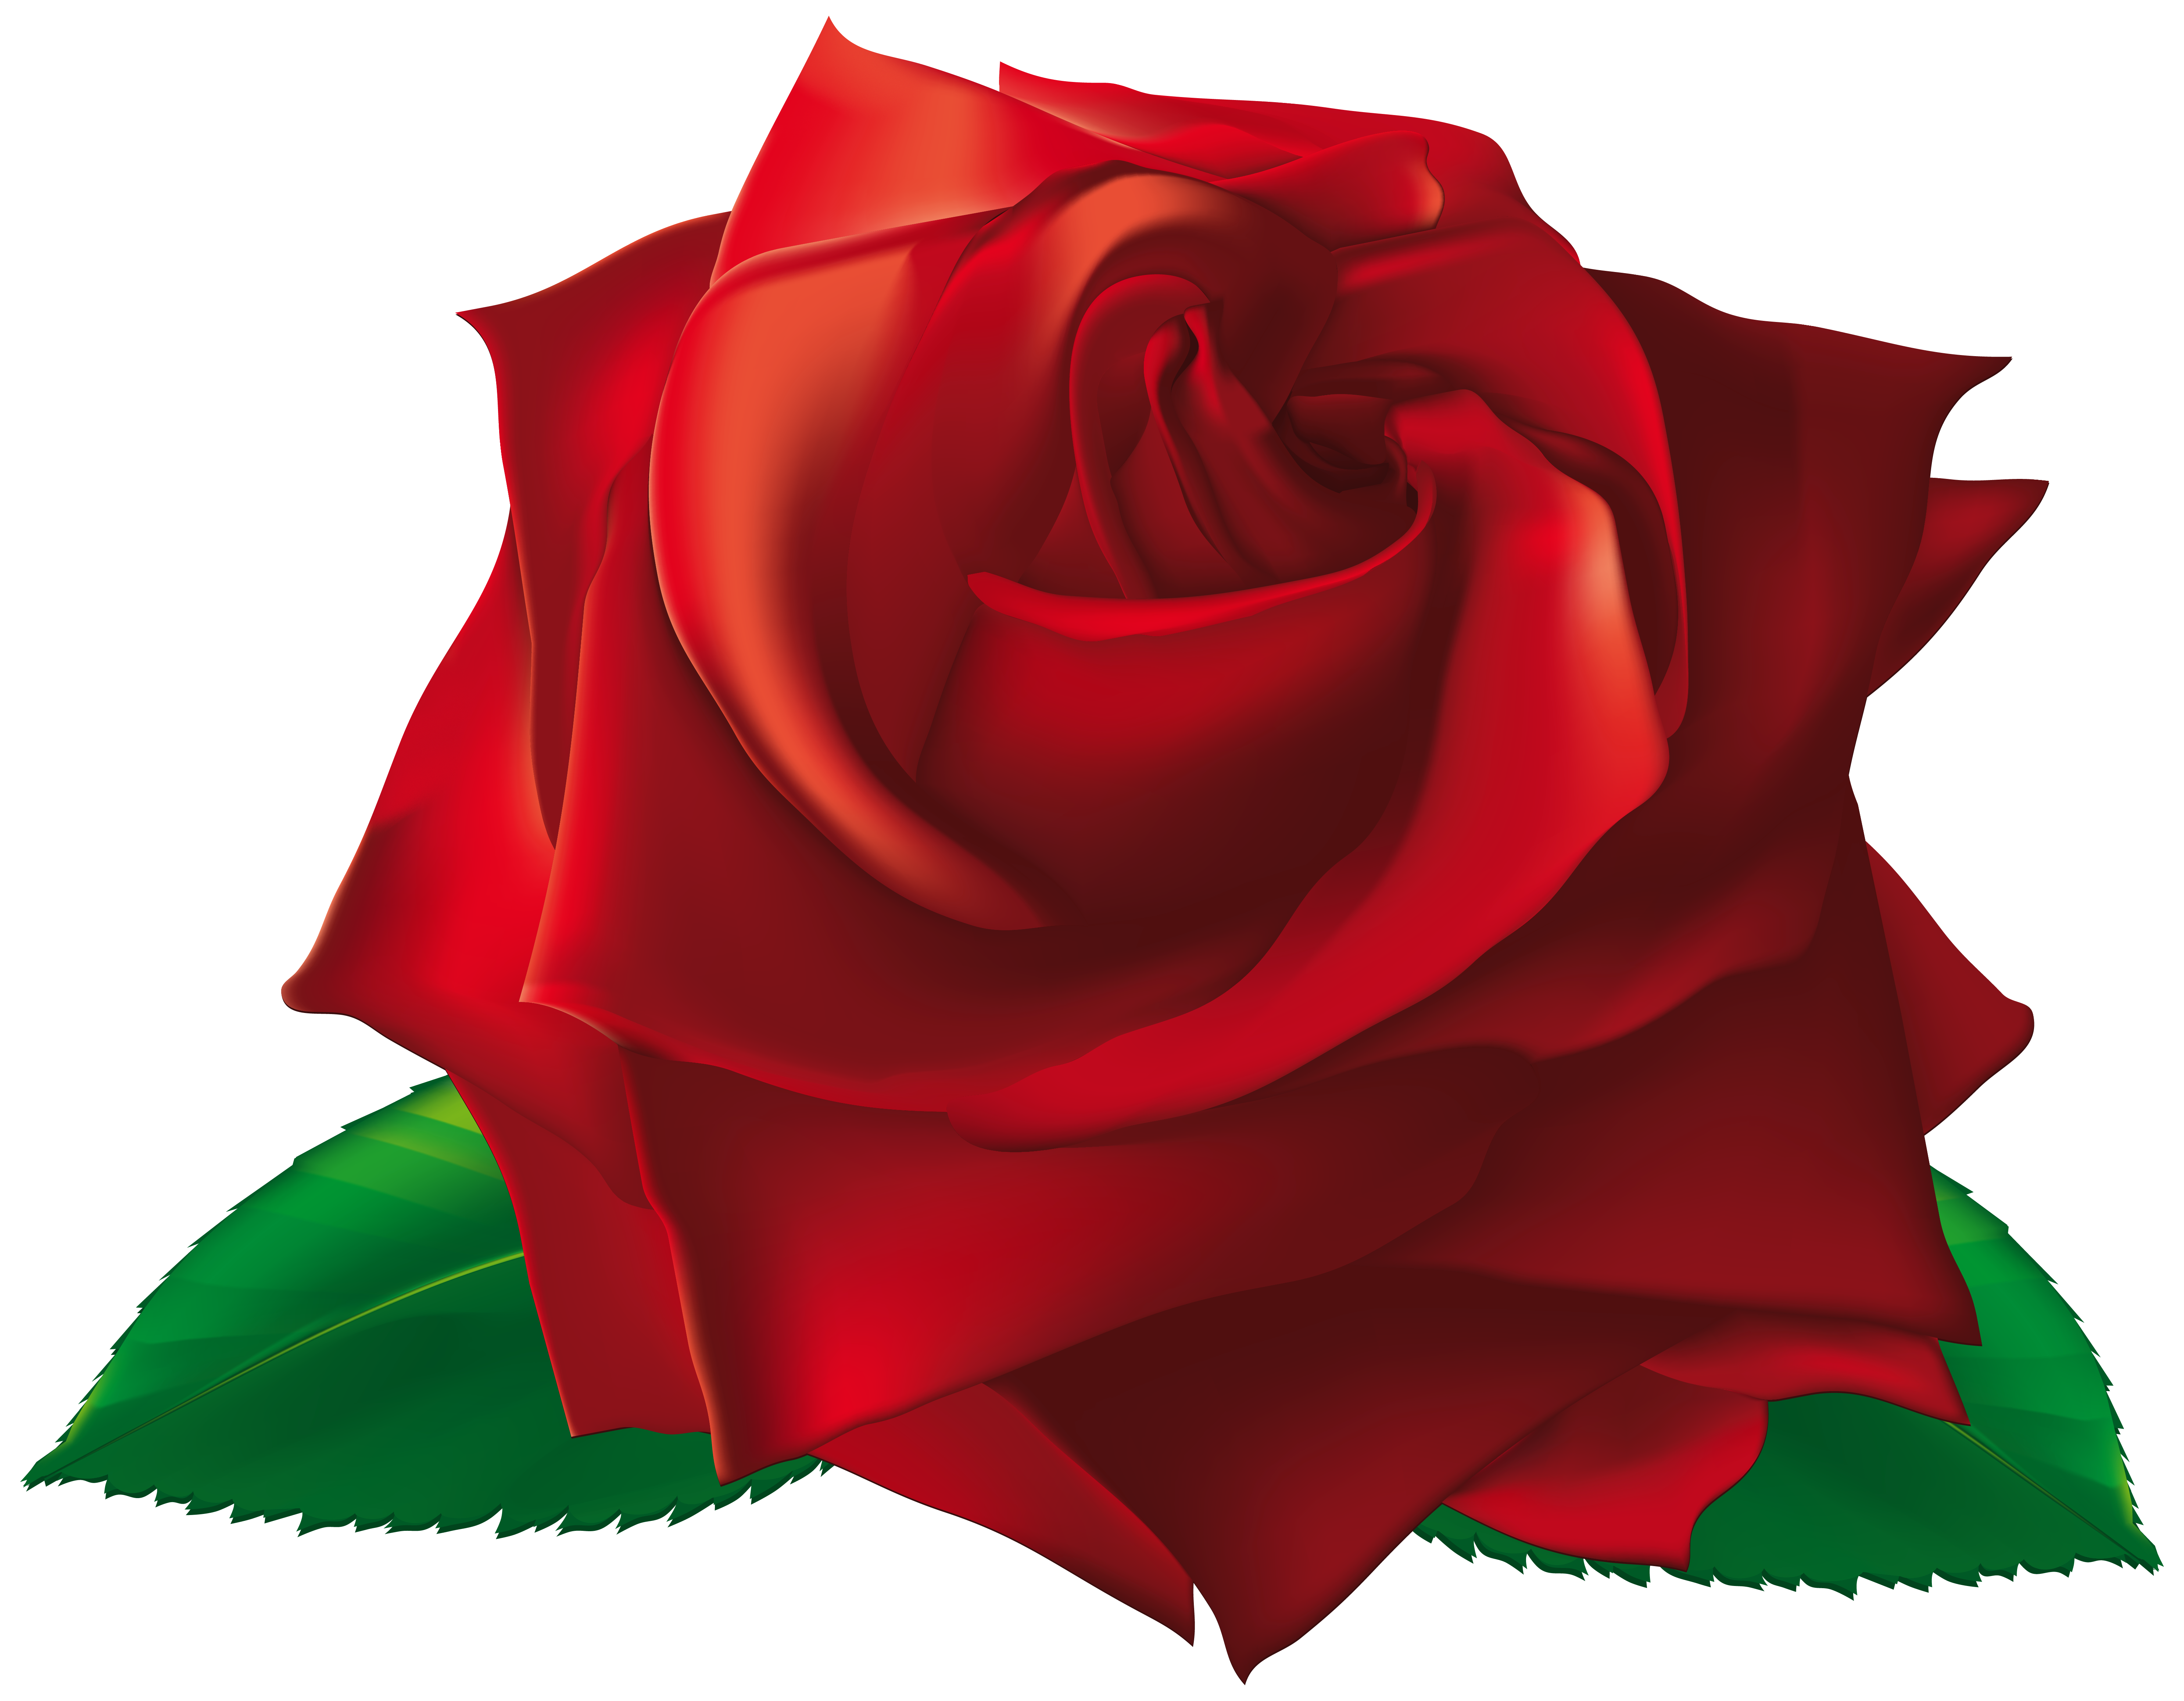 Red png image gallery. Rose clipart single